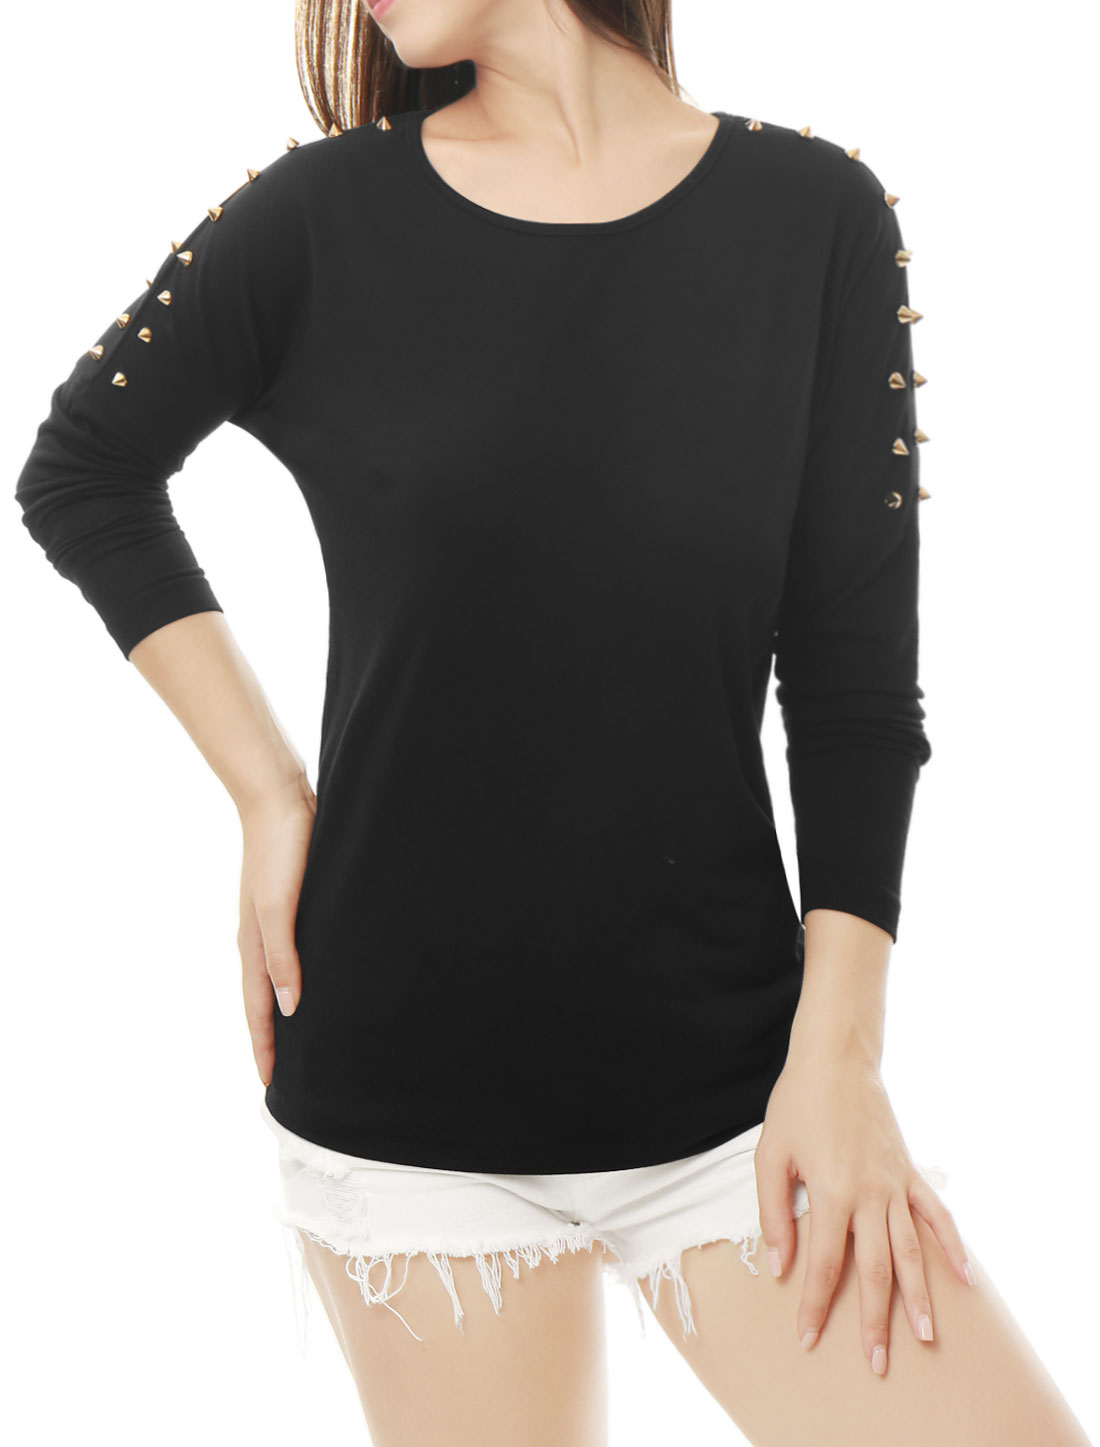 Allegra K Women Round Neck Studs Embellished Dolman Sleeves Top Black M